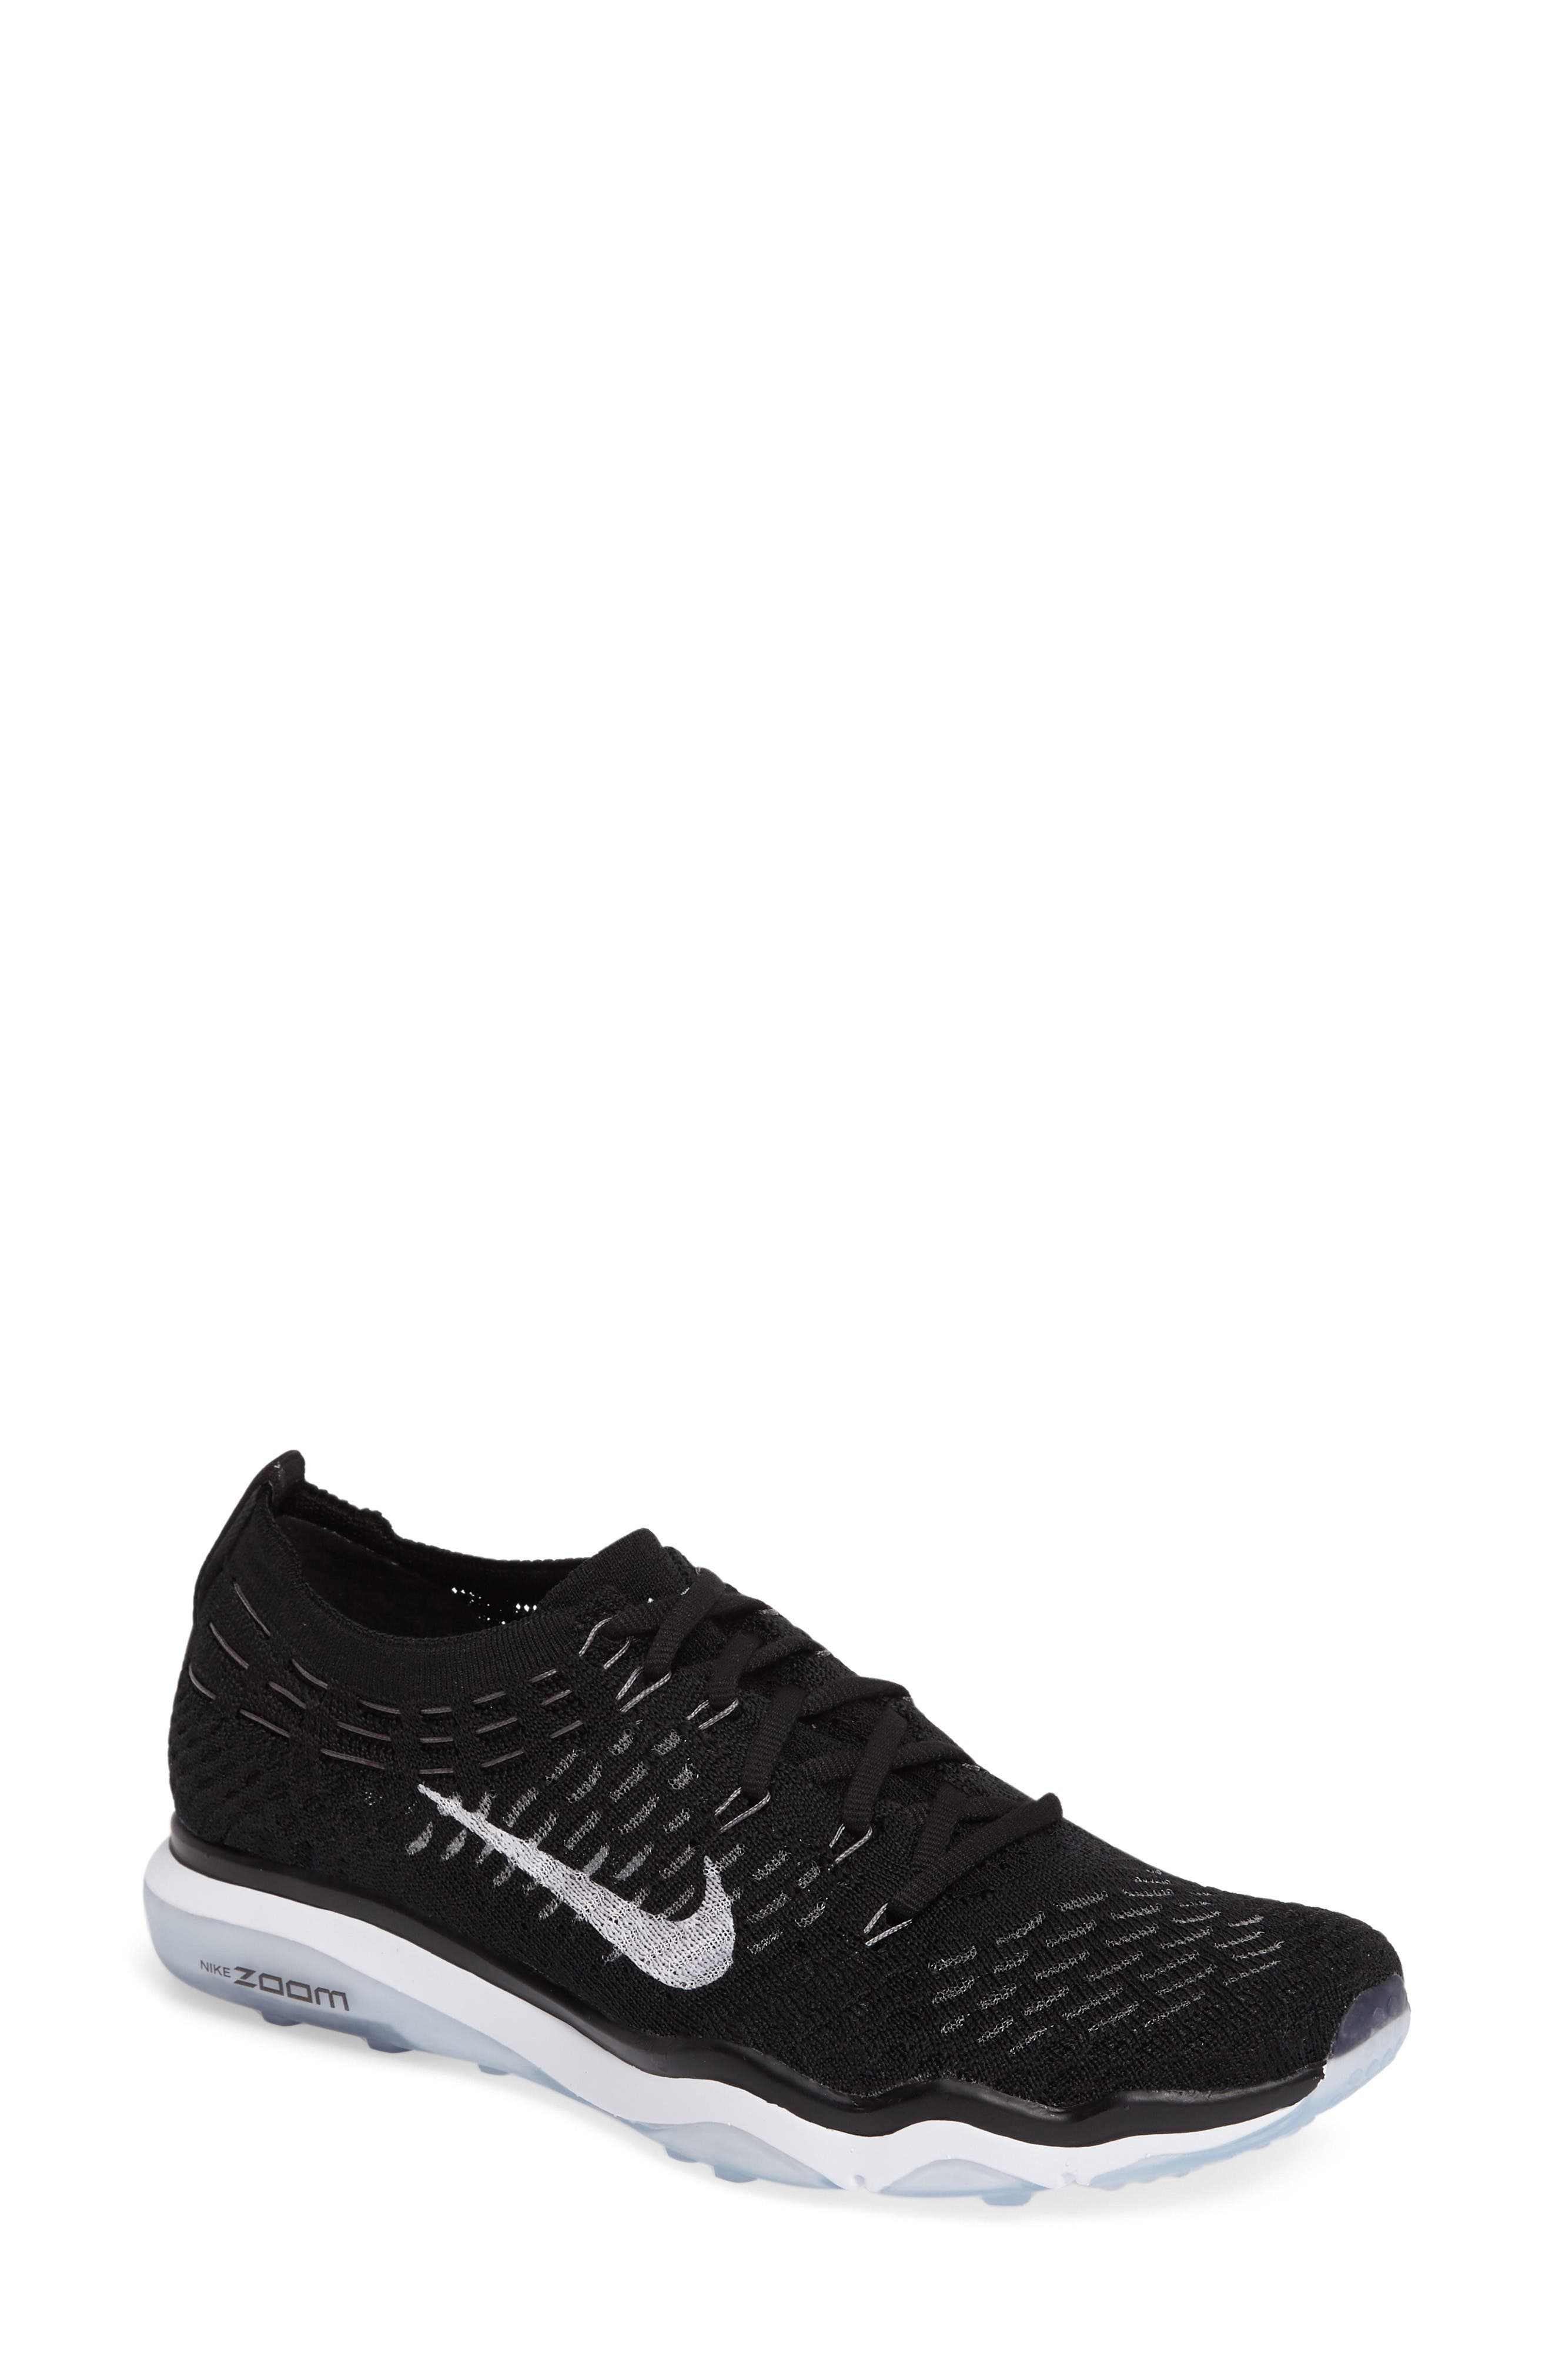 Air Zoom Fearless Flyknit Training Shoe,                         Main,                         color, Black/ White